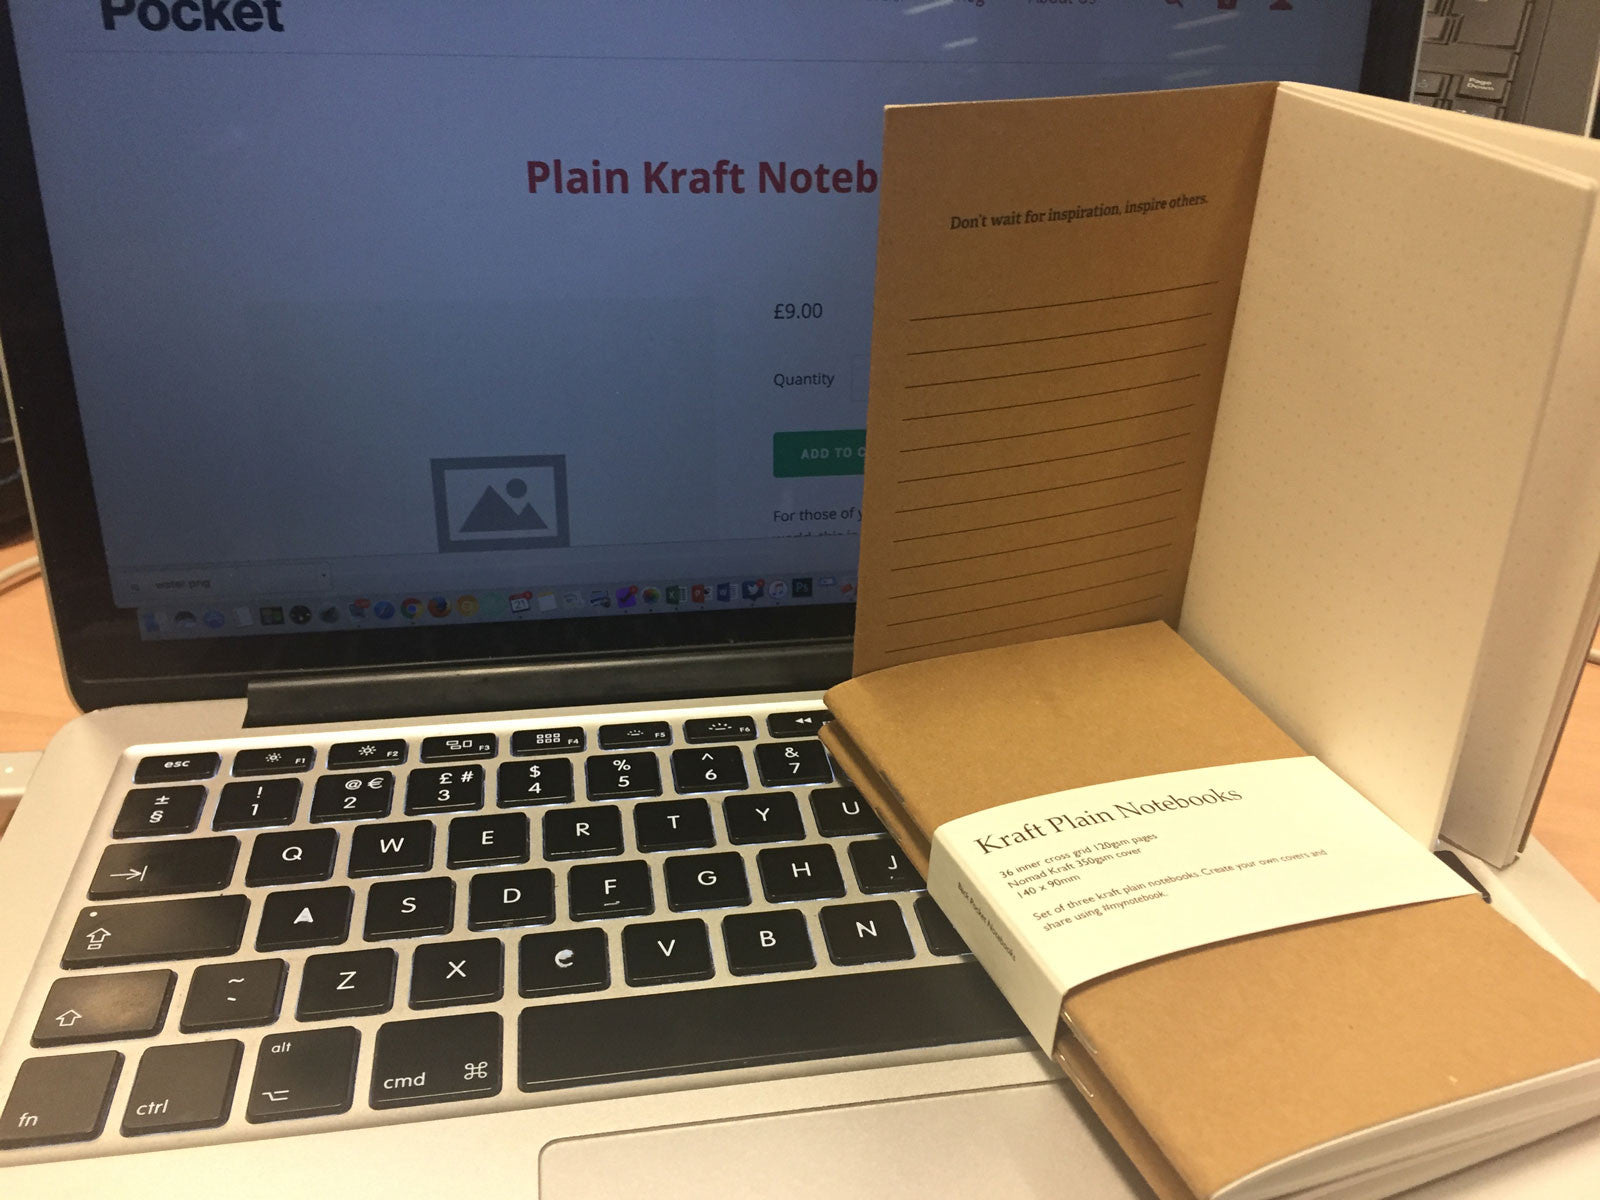 Plain Kraft Notebook